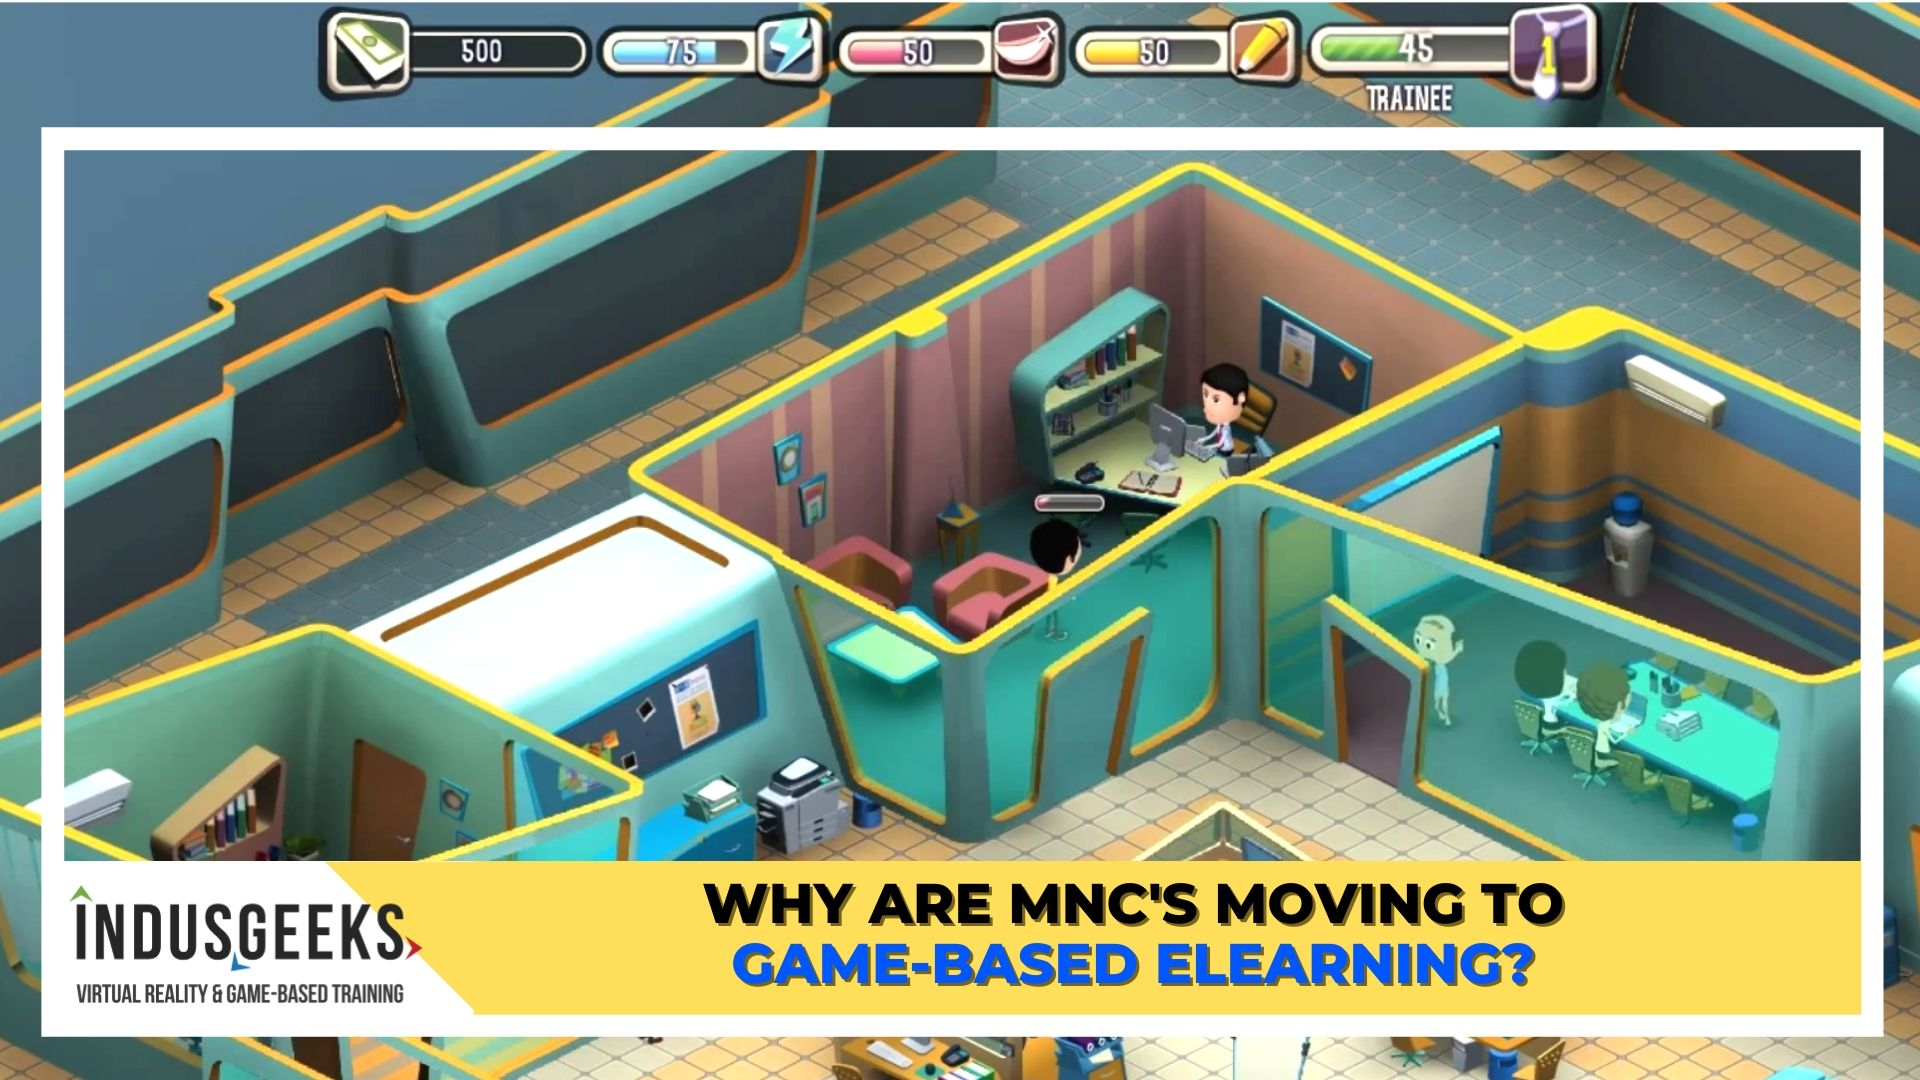 Game-based eLearning